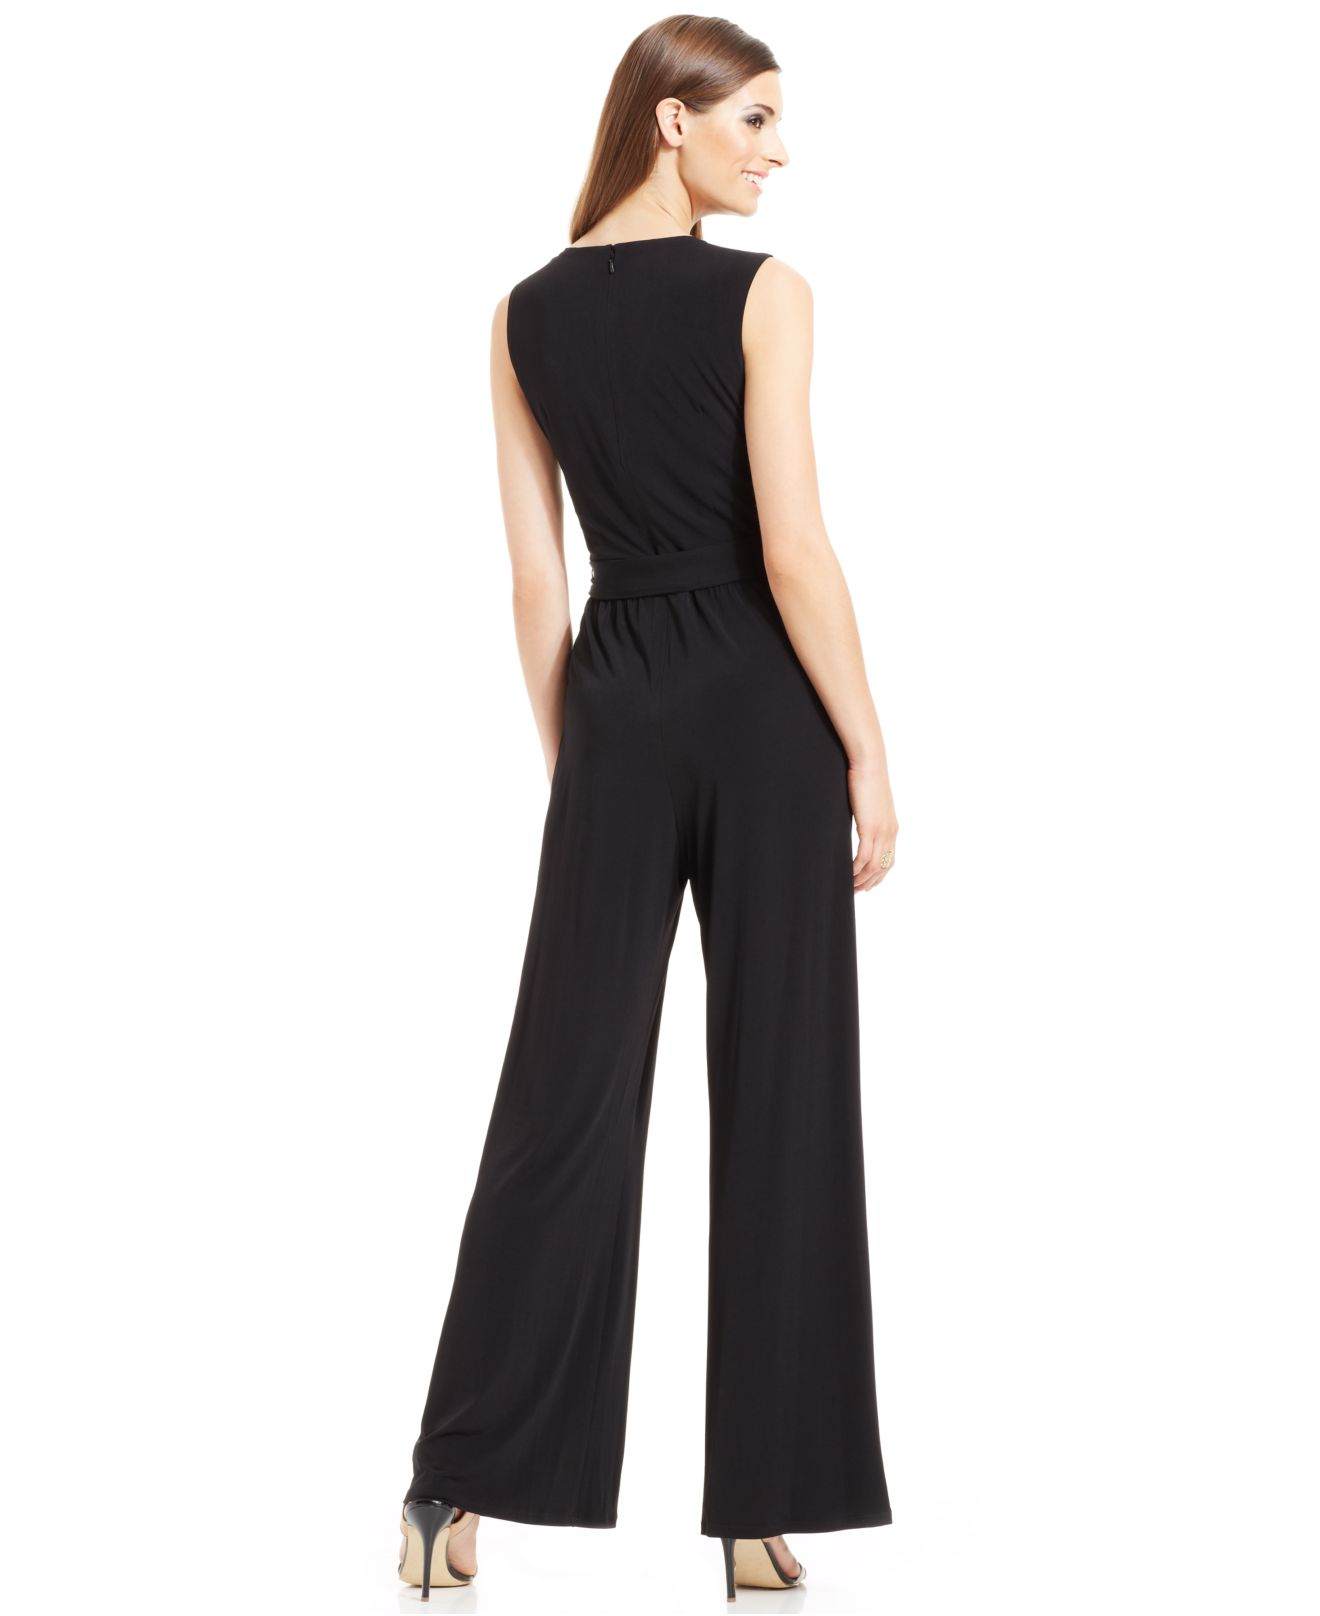 a4ab530f4371 Lyst - Vince Camuto Wide-Leg Belted Sleeveless Jumpsuit in Black